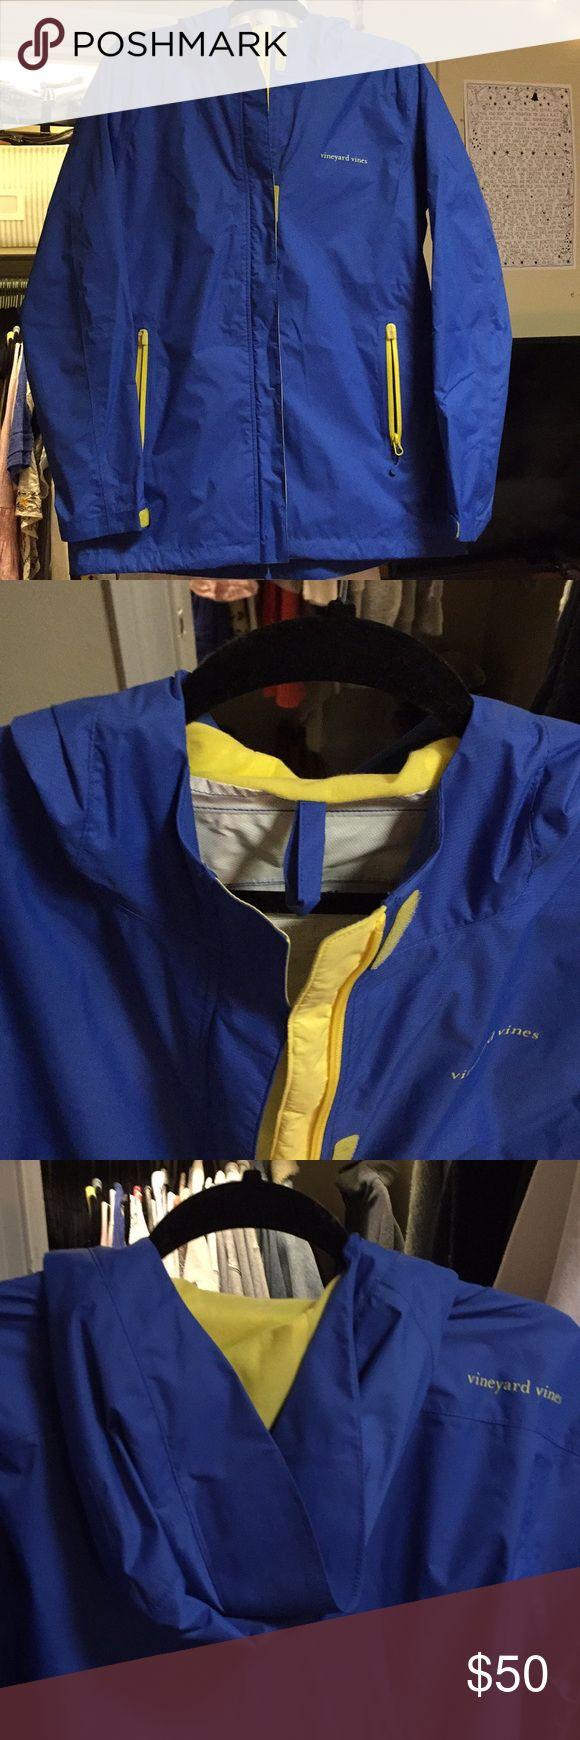 Vineyard Vines blue women's rain jacket EUC Classic stow and go jacket by VV women's medium. Pristine condition, only defect is that my name is written in sharpie inside at neck. Can easily be covered with a simple name sticker or scribbling out! Offers welcome Vineyard Vines Jackets & Coats